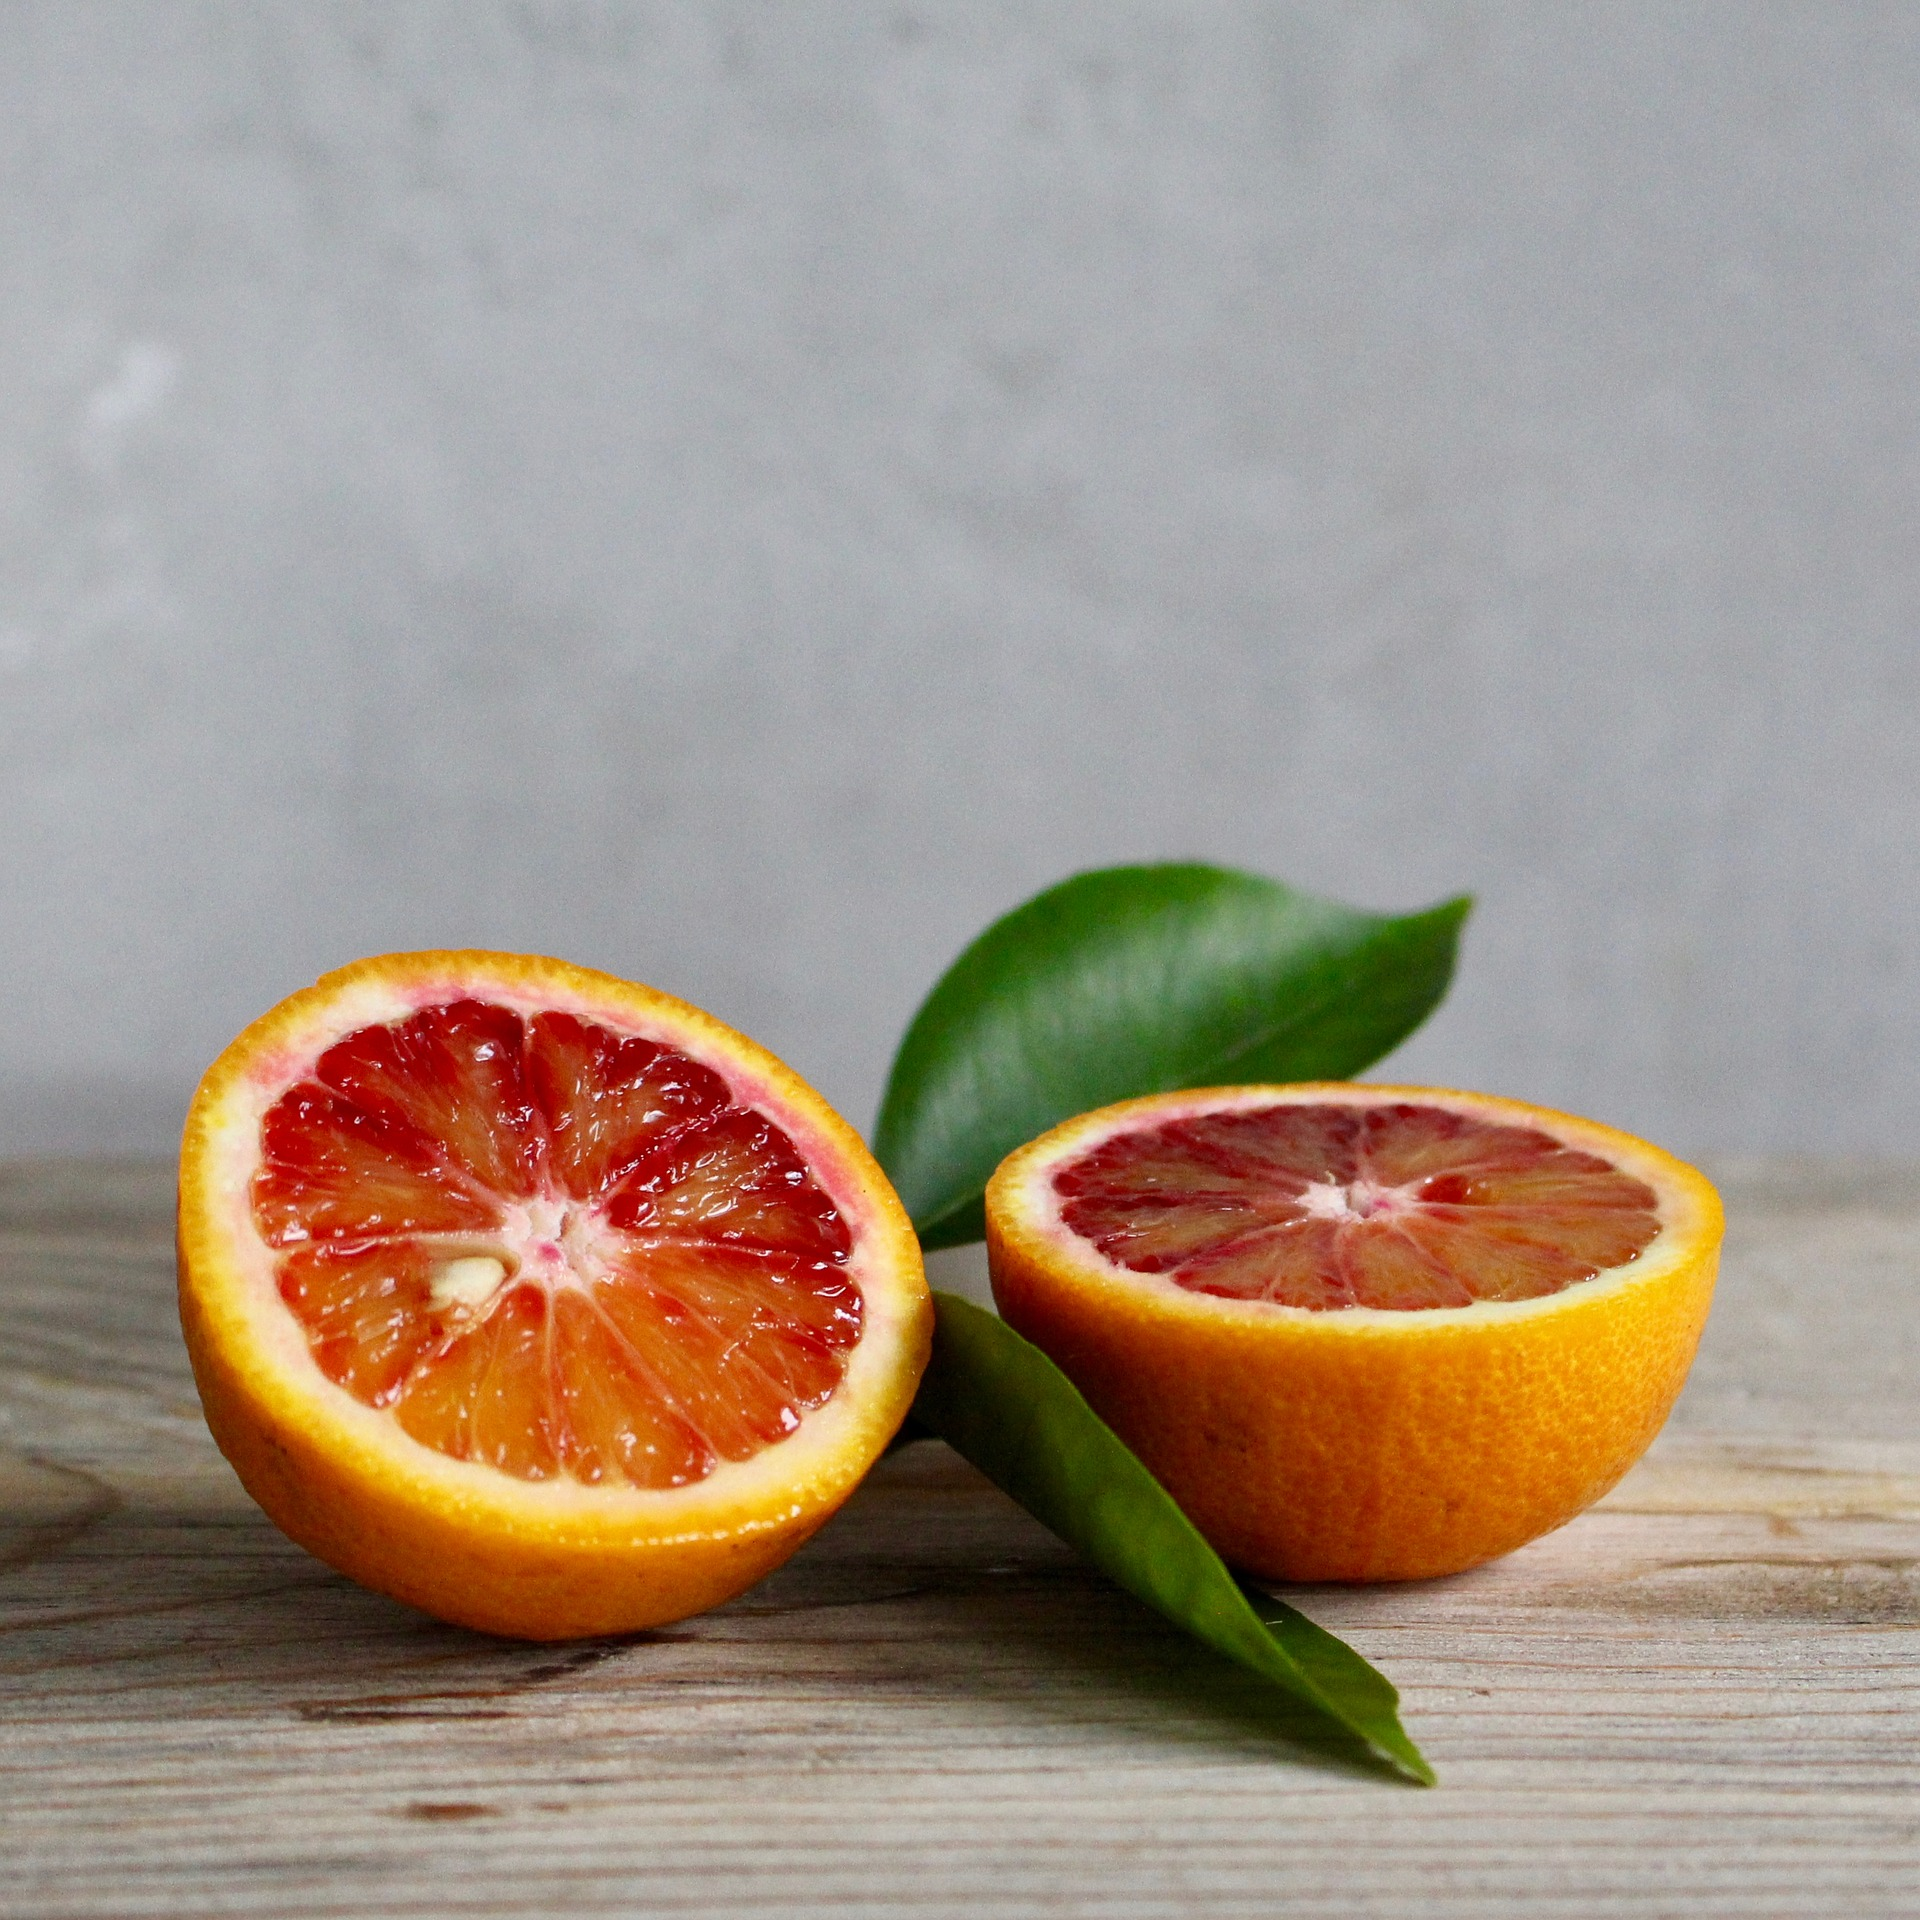 two blood oranges with garnish leaves in between